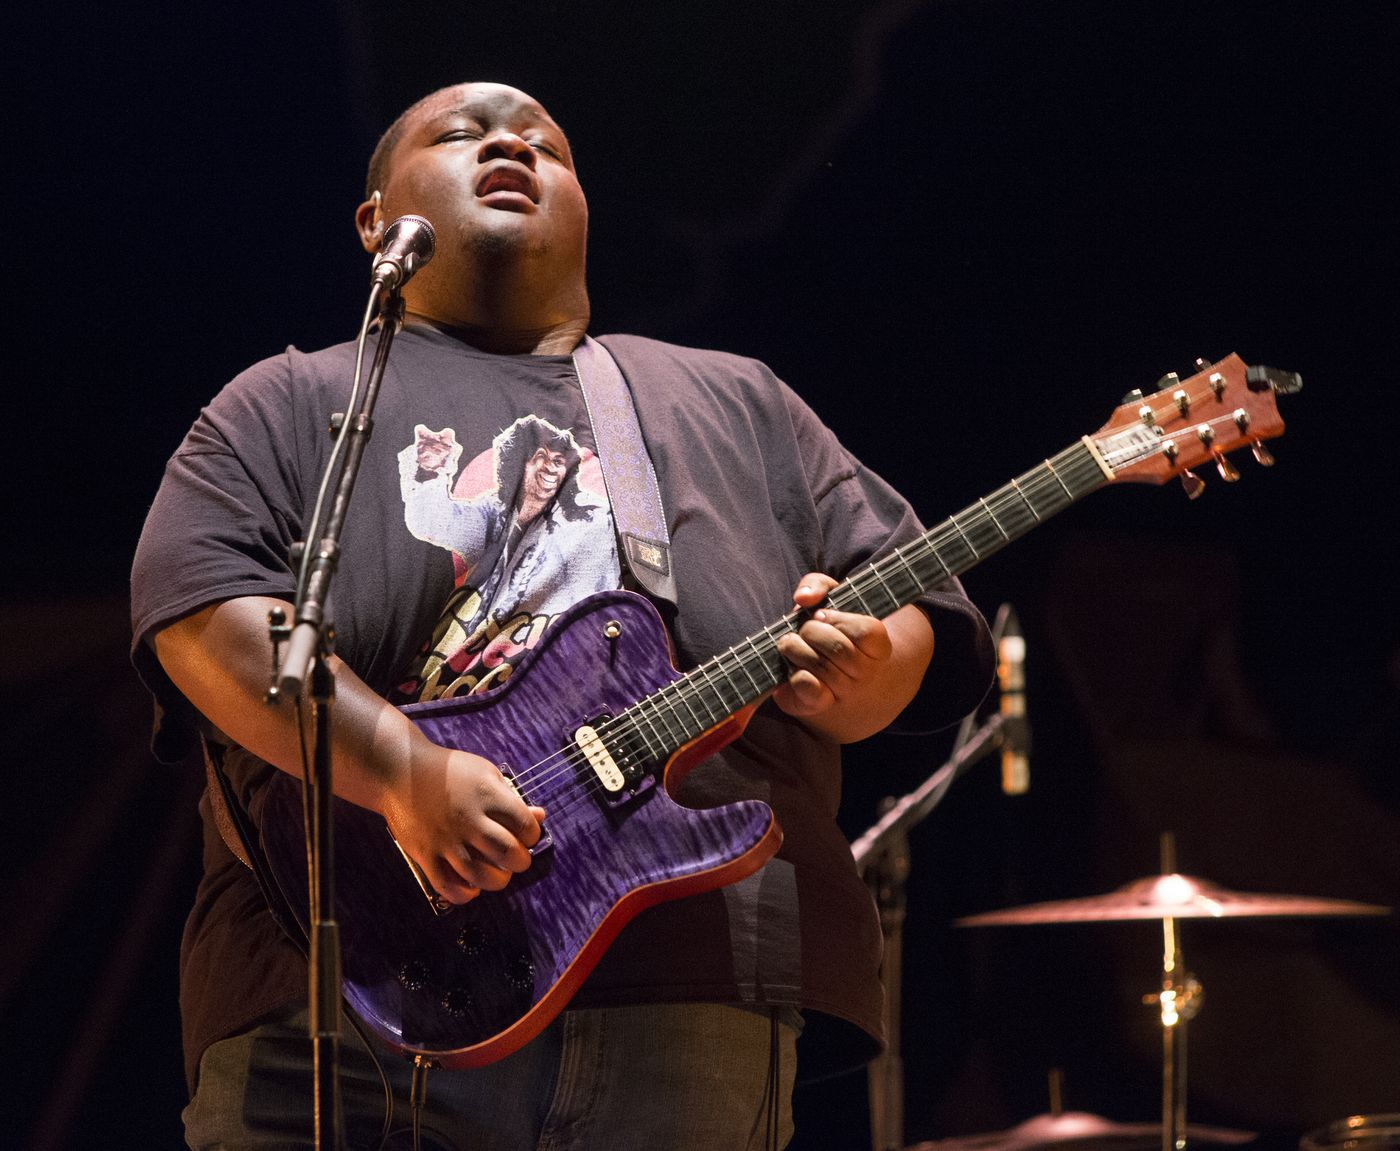 """Christone """"Kingfish"""" Ingram performs in concert as the opening act for Vampire Weekend during their """"Father of the Bride Tour"""" at TD Pavilion at the Mann on Wednesday, Sept. 4, 2019, in Philadelphia. (Photo by Owen Sweeney/Invision/AP)"""